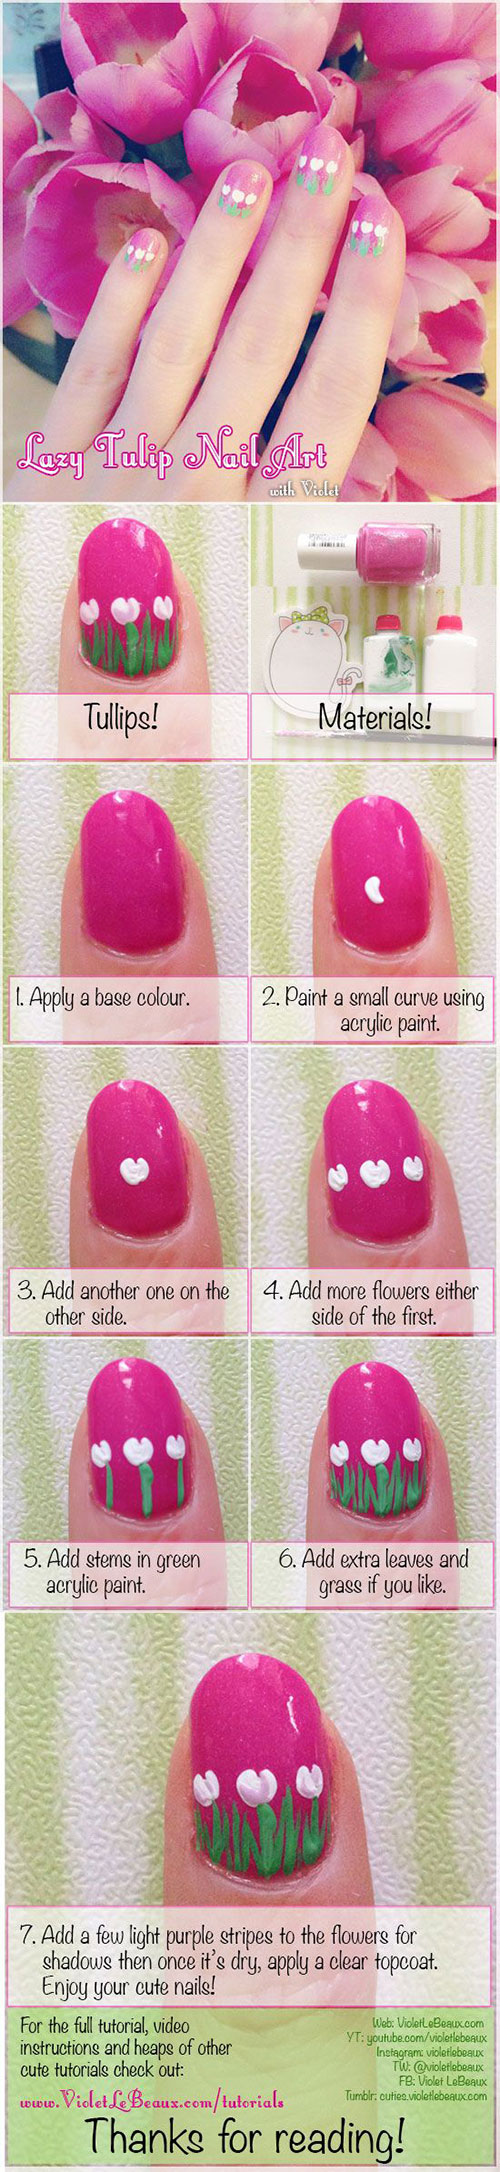 15-Easy-Spring-Nails-Tutorials-For-Beginners-Learners-2016-16